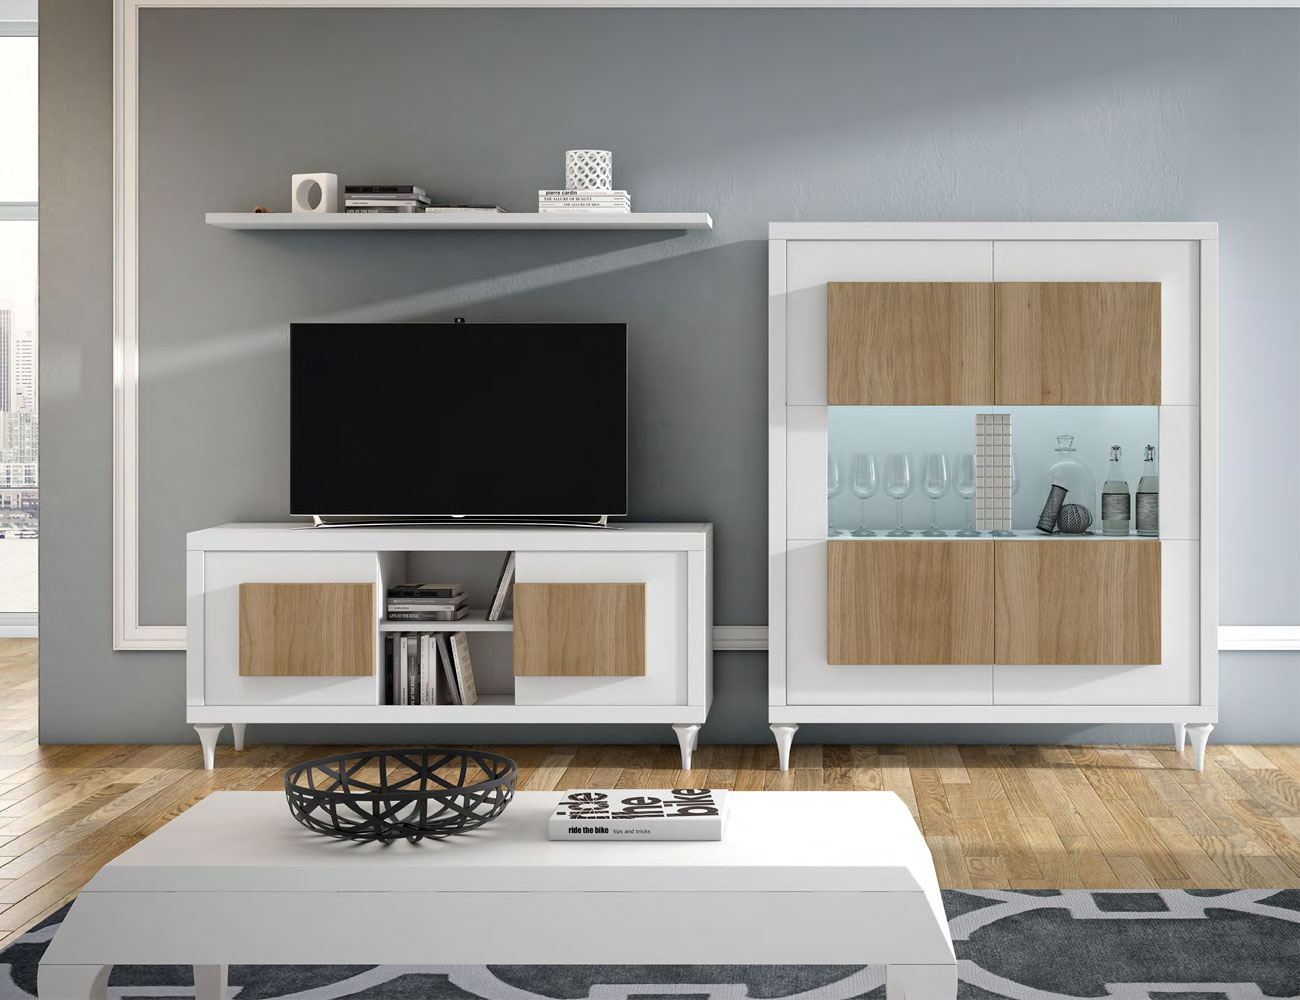 Composicion3 mueble salon comedor neoclasico blanco roble natural vitrina tv